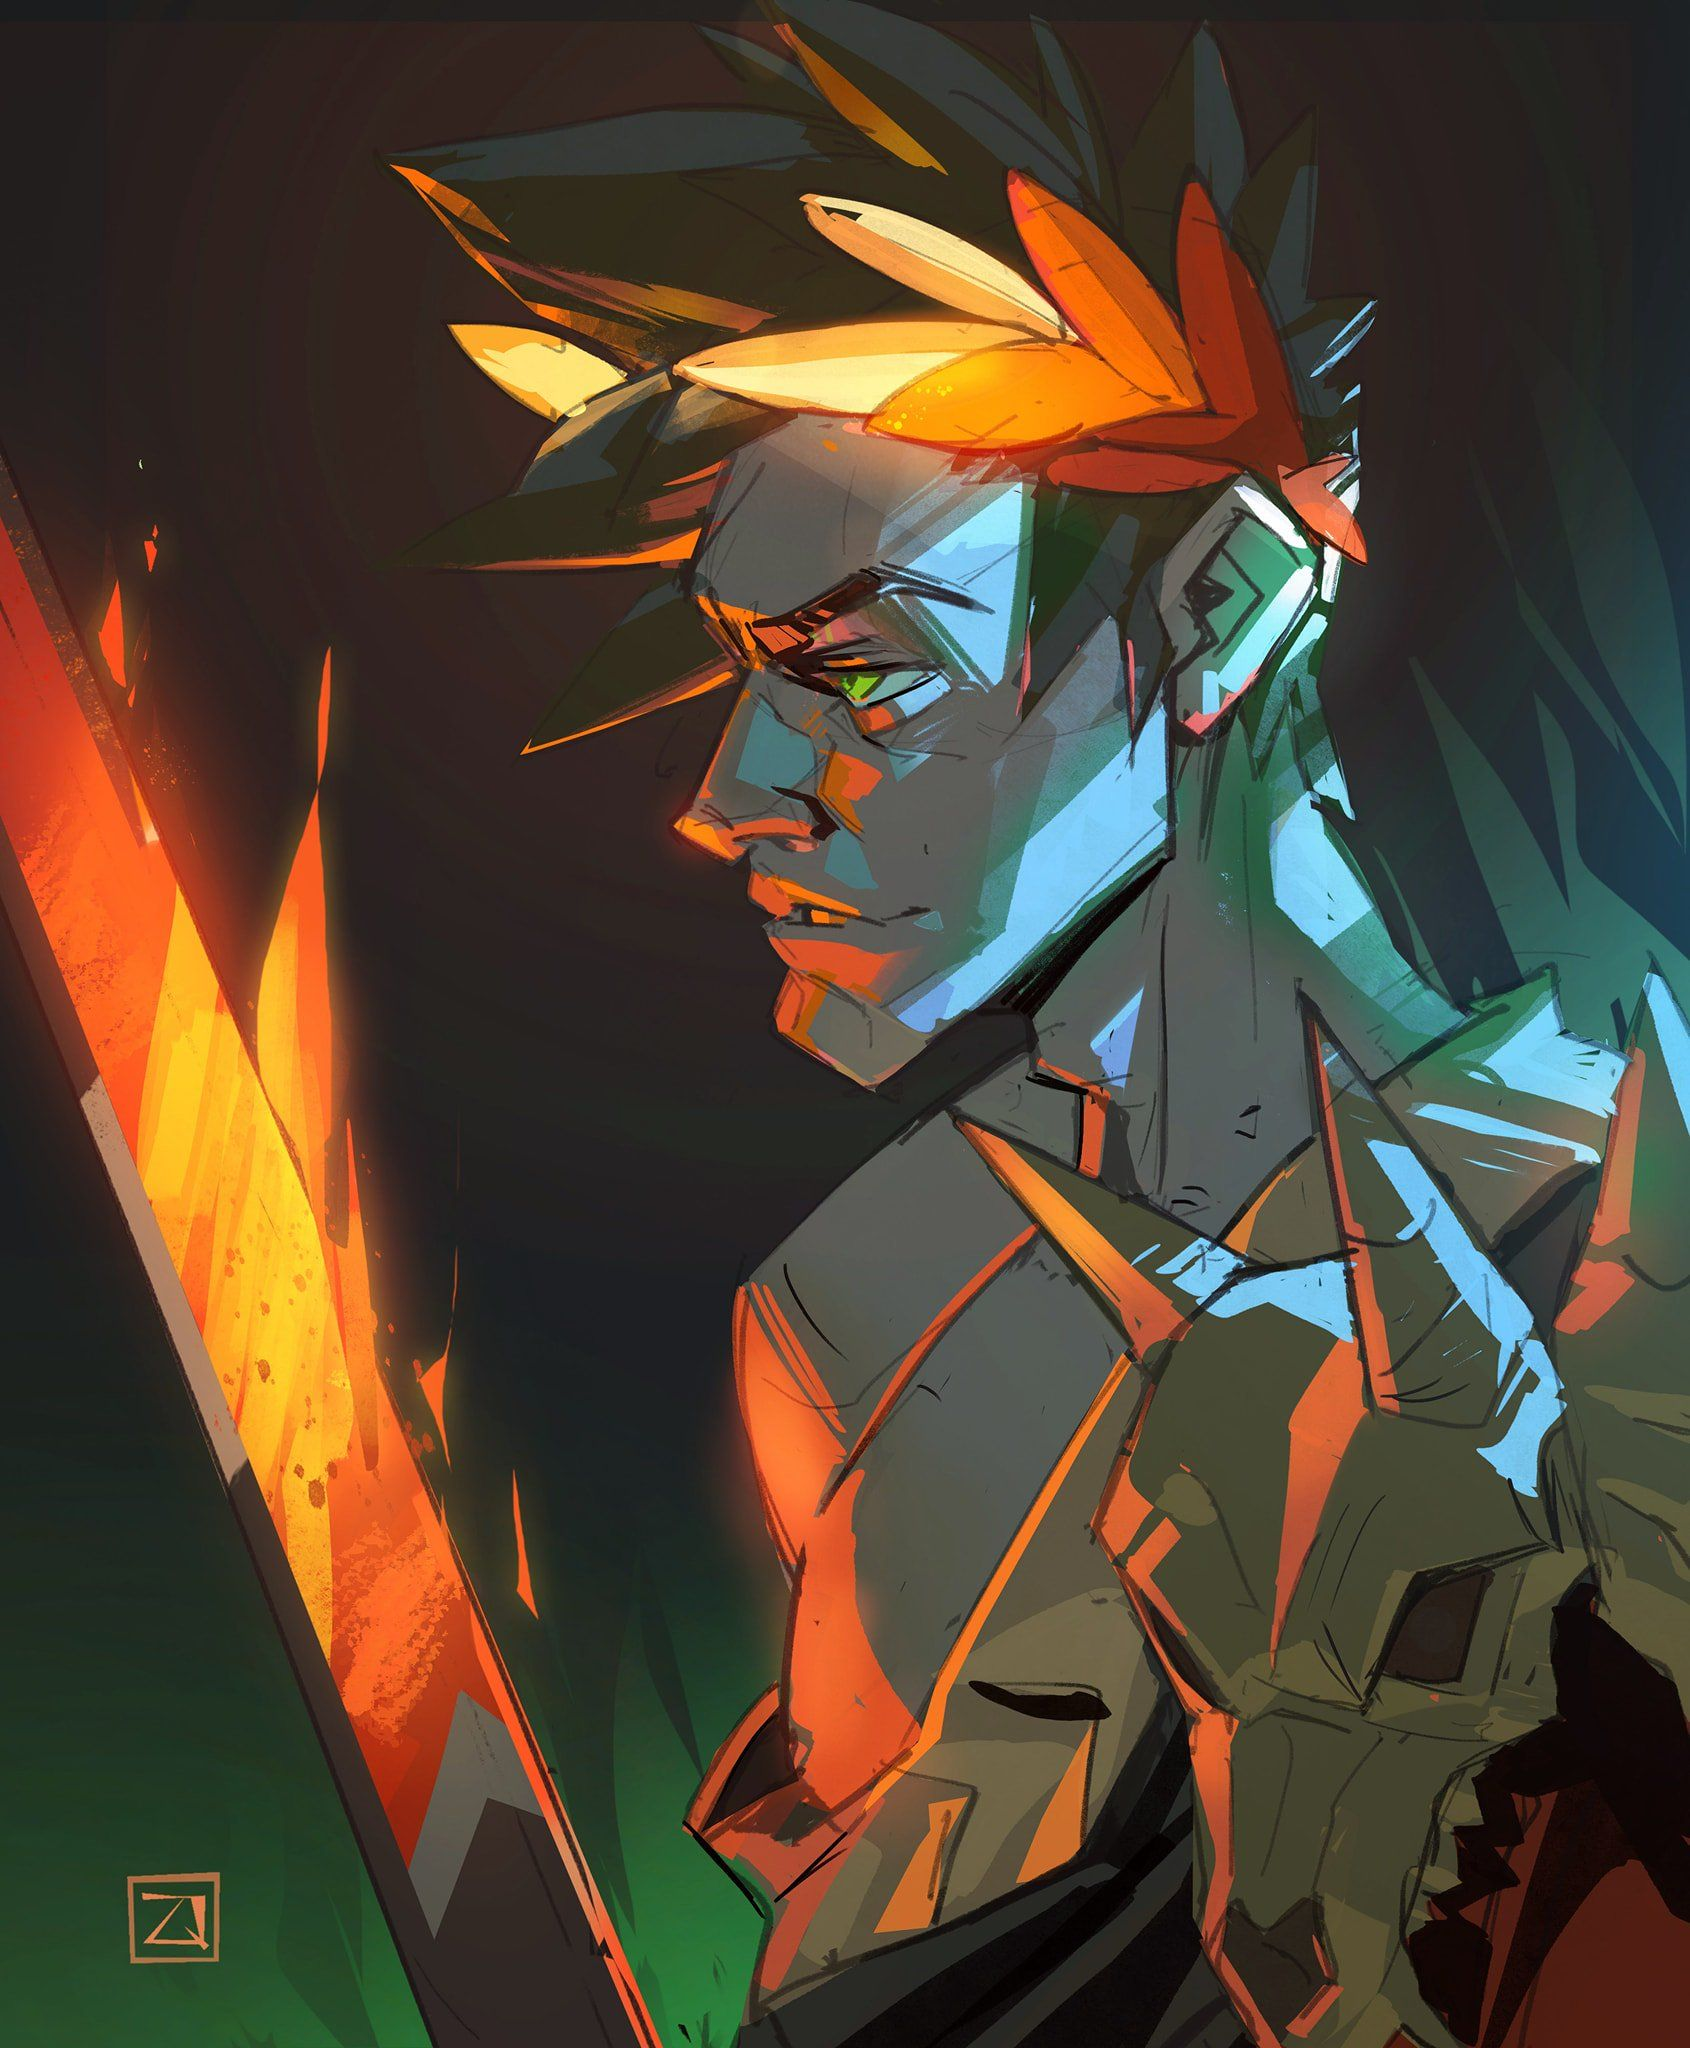 SupergiantGames #Hades #Zagreus | They call me the Gamer in